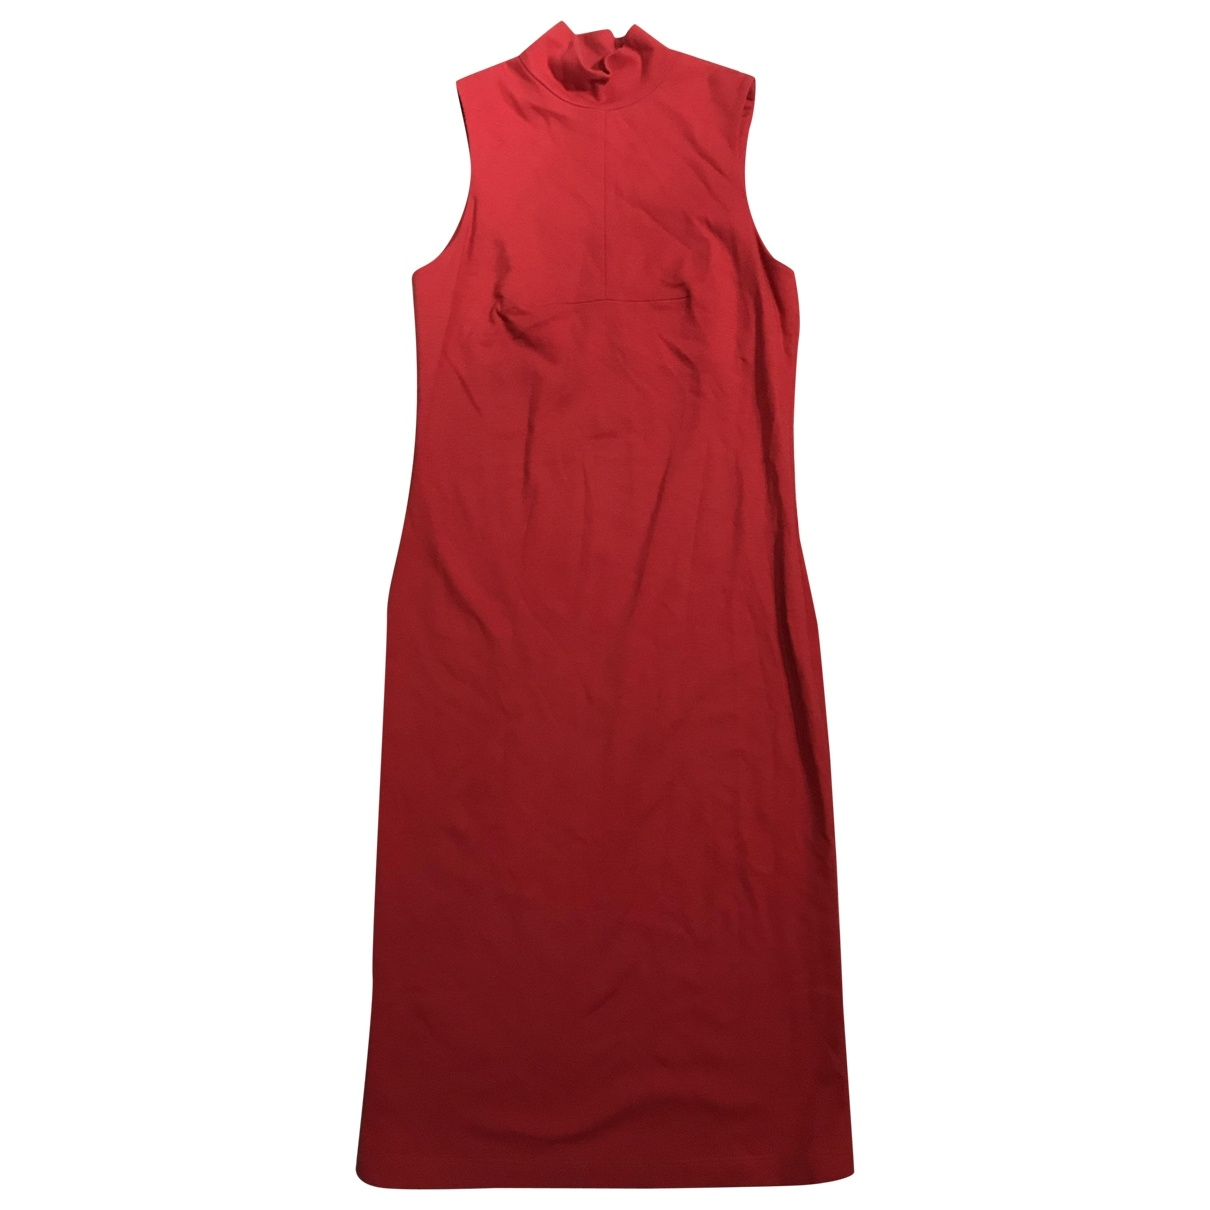 Versus \N Red Polyamide dress for Women 42 IT